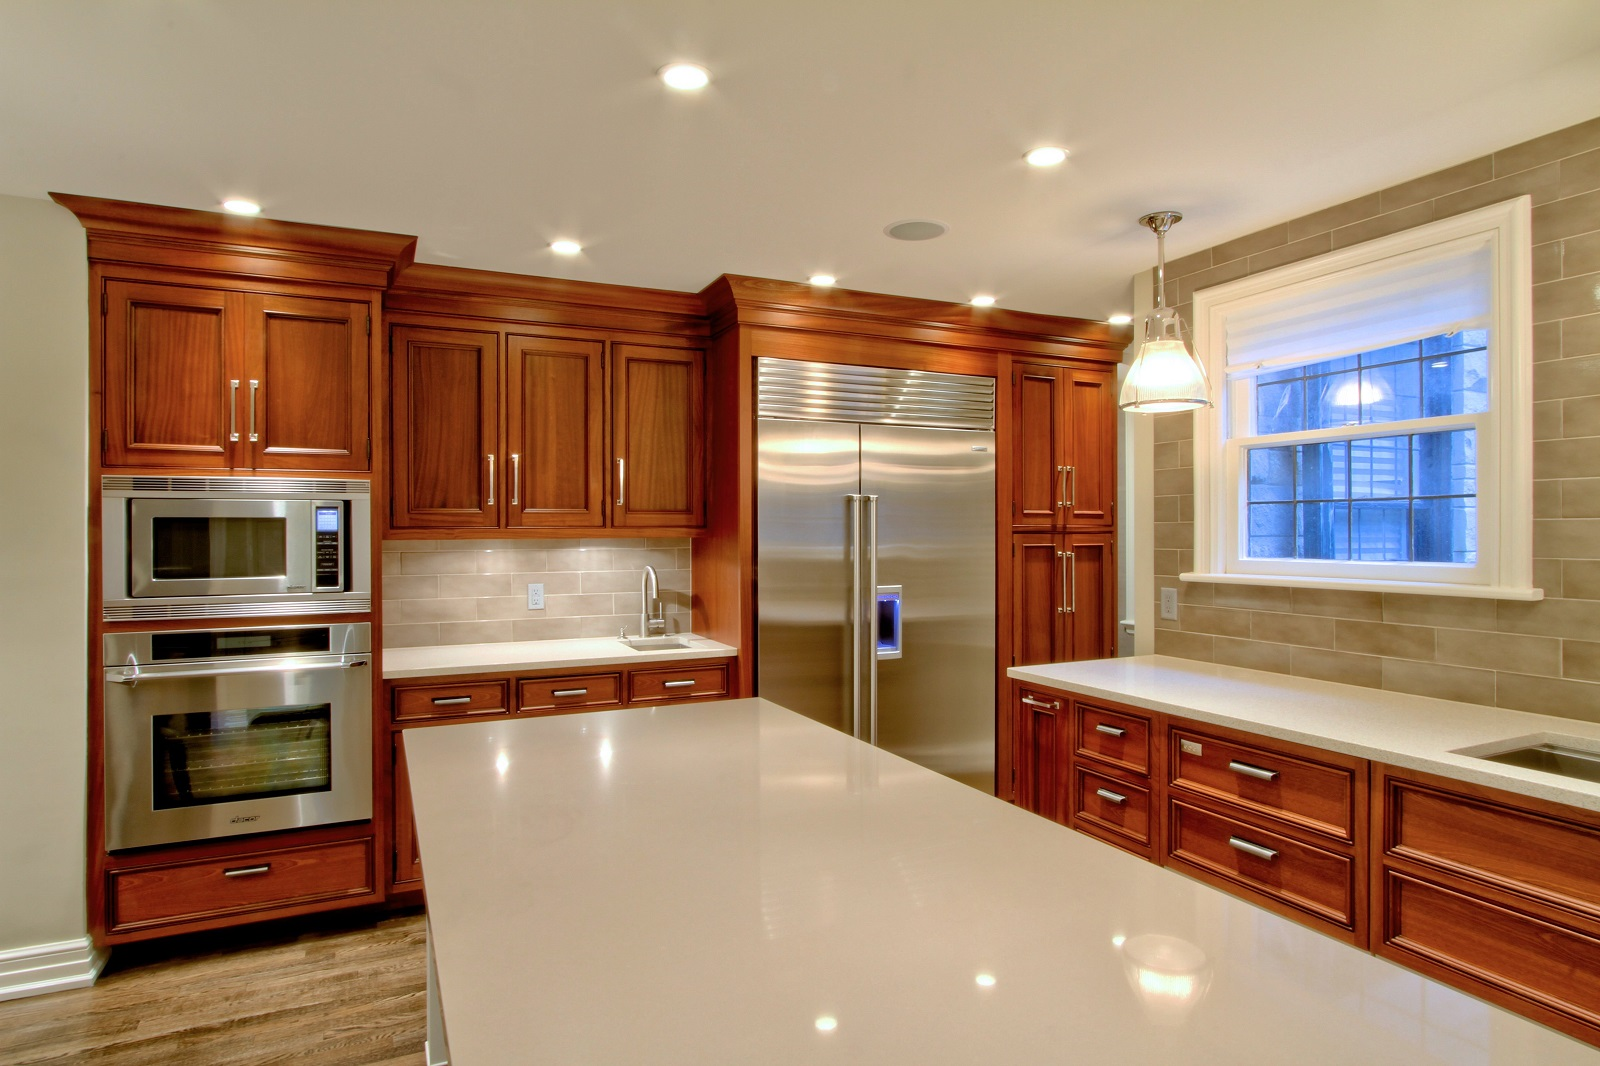 indianapolis kitchen remodeling and design kitchen remodeling Meridian Kessler Kitchen Remodel After